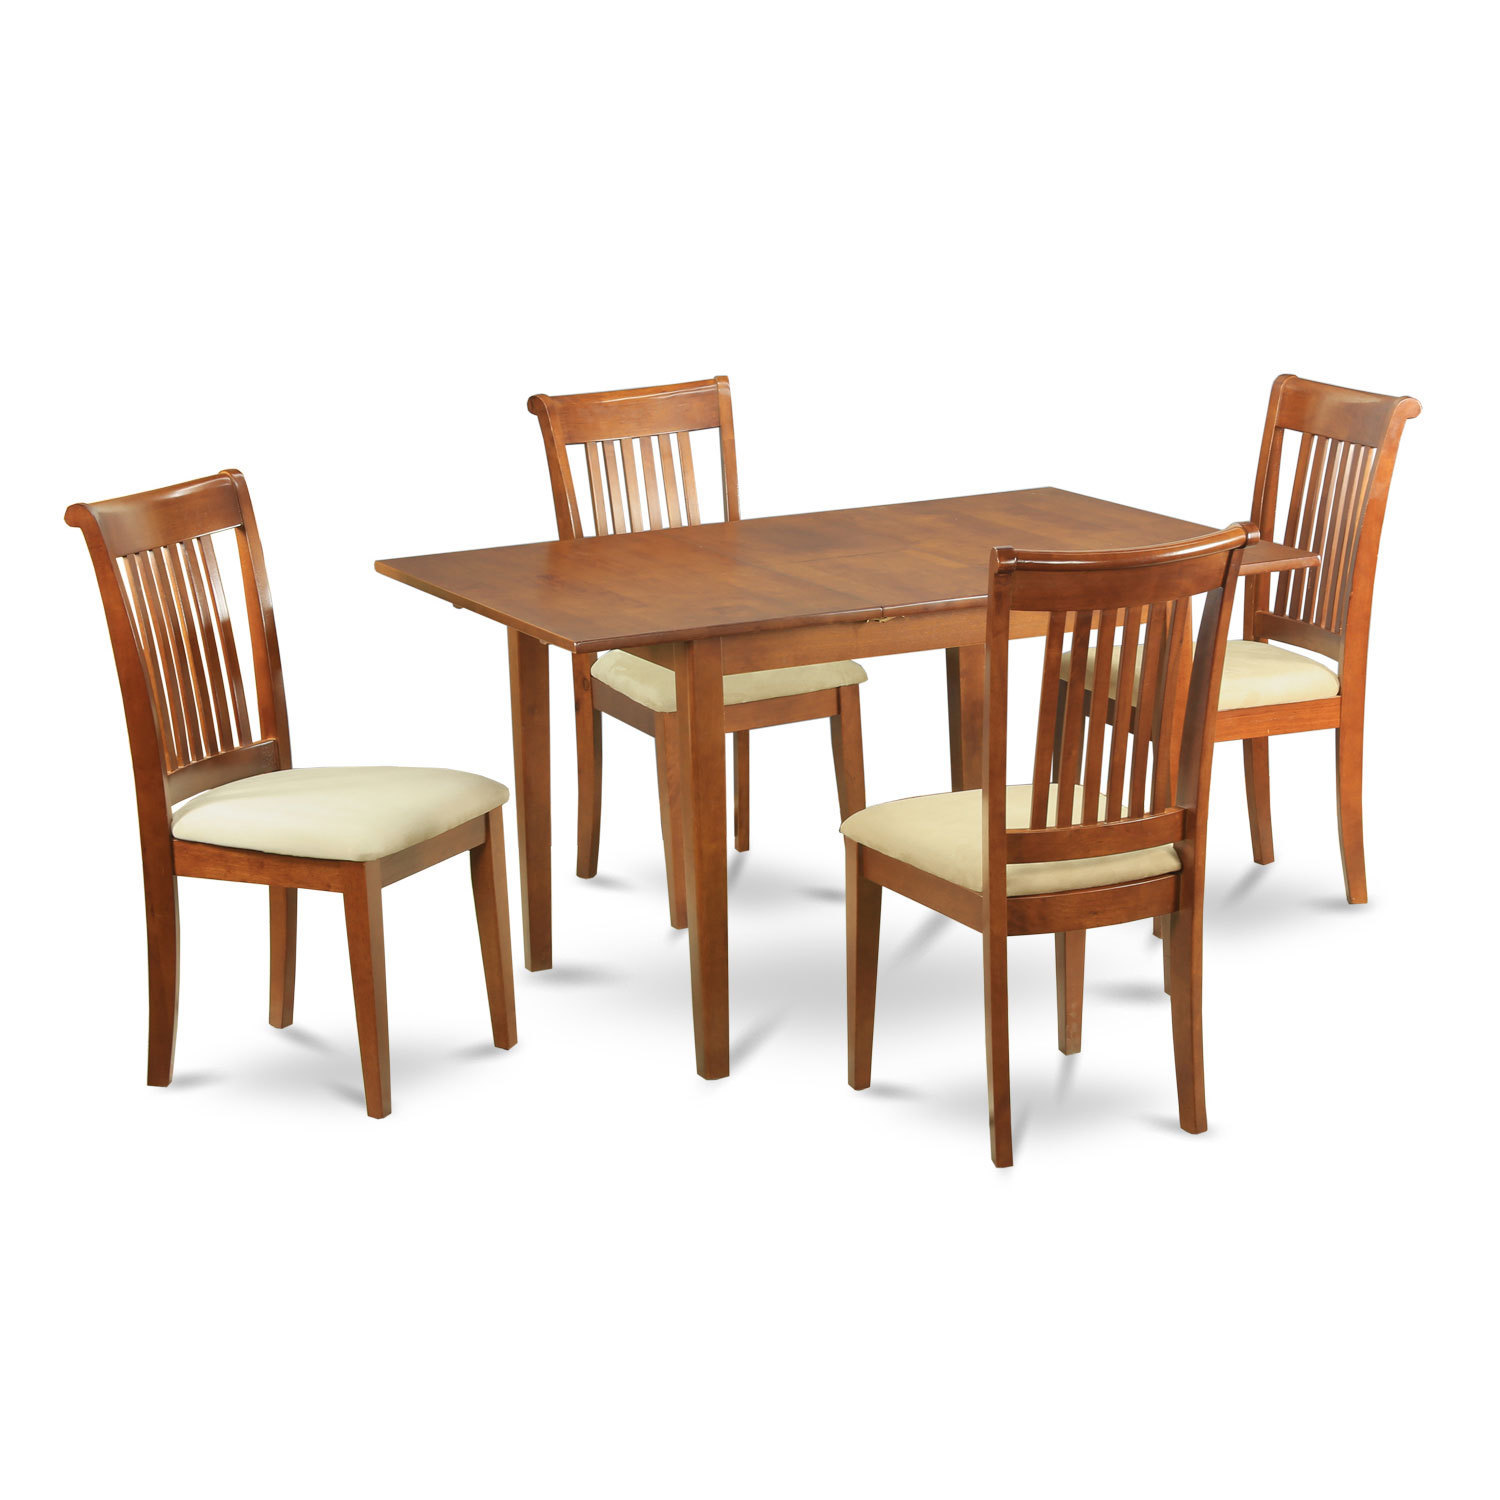 Small dinette set design homesfeed for Small wooden dining table set